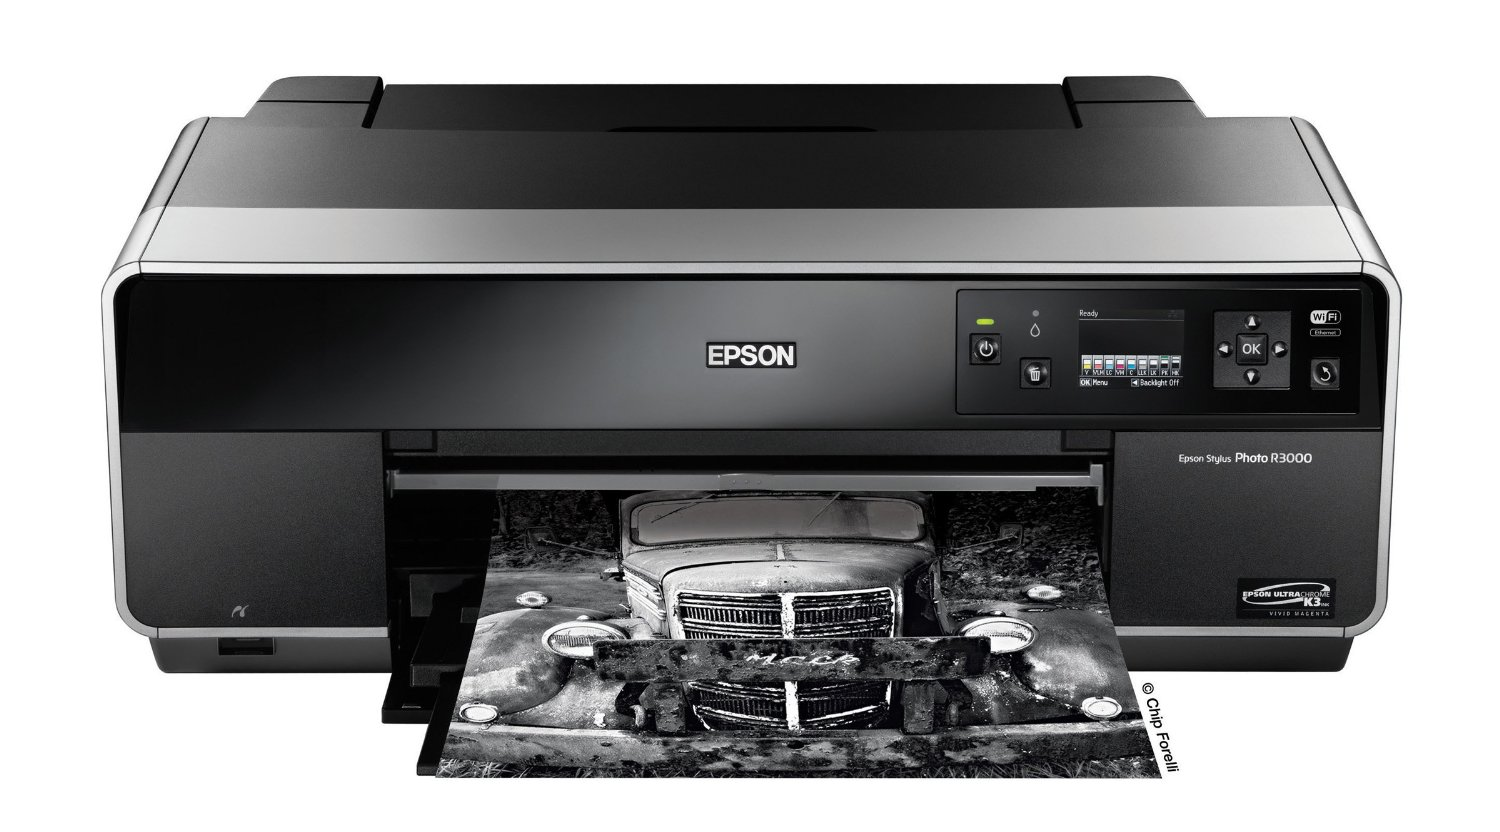 E_p_s_o_n Sty_lus Photo R3000 Wireless Wide-Format Color I_n_k_j_e_t Printer